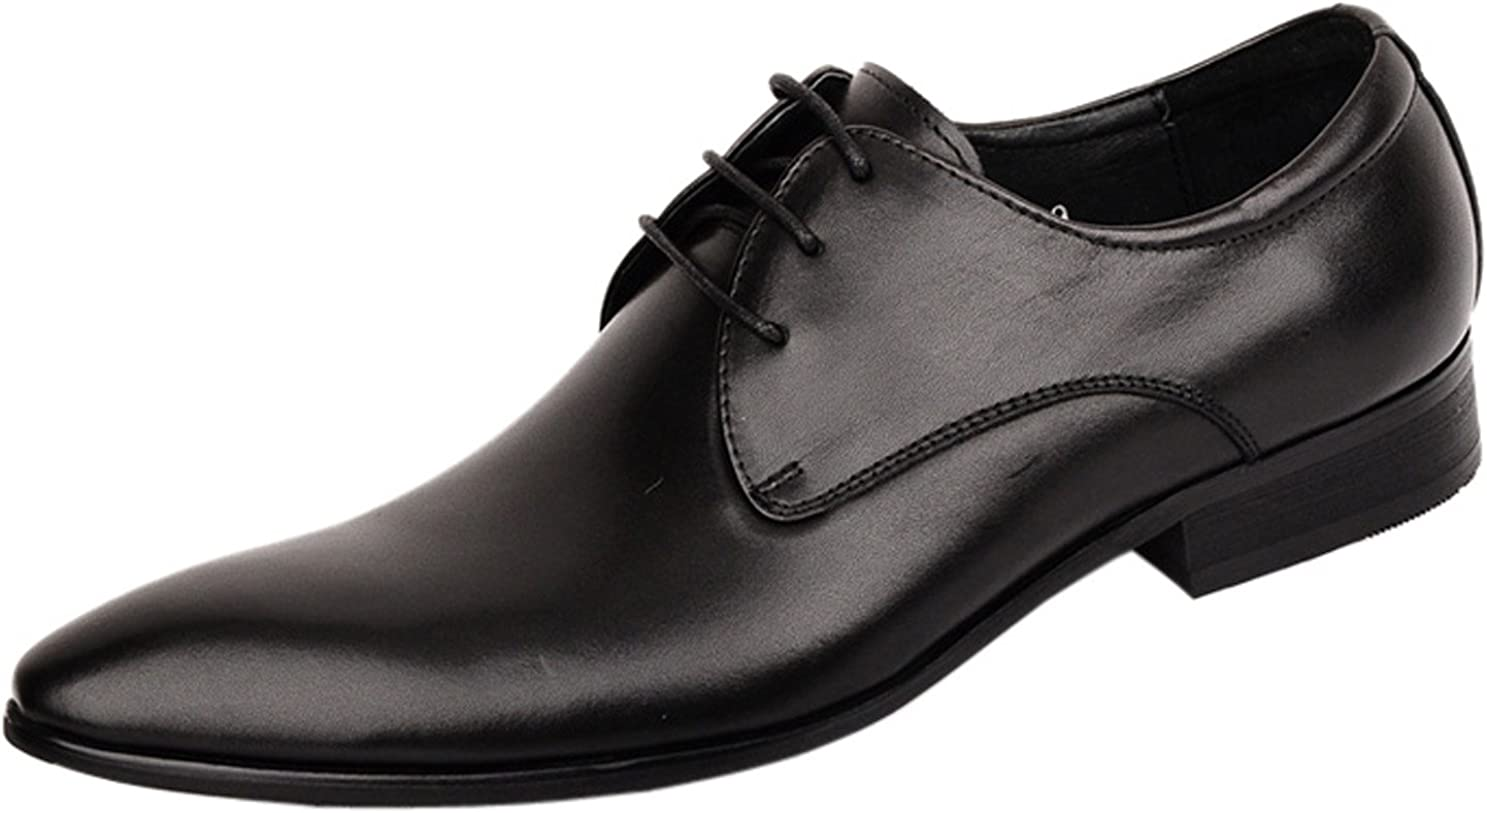 Liveinu Mens Leather White Dress Casual Oxfords Shoes